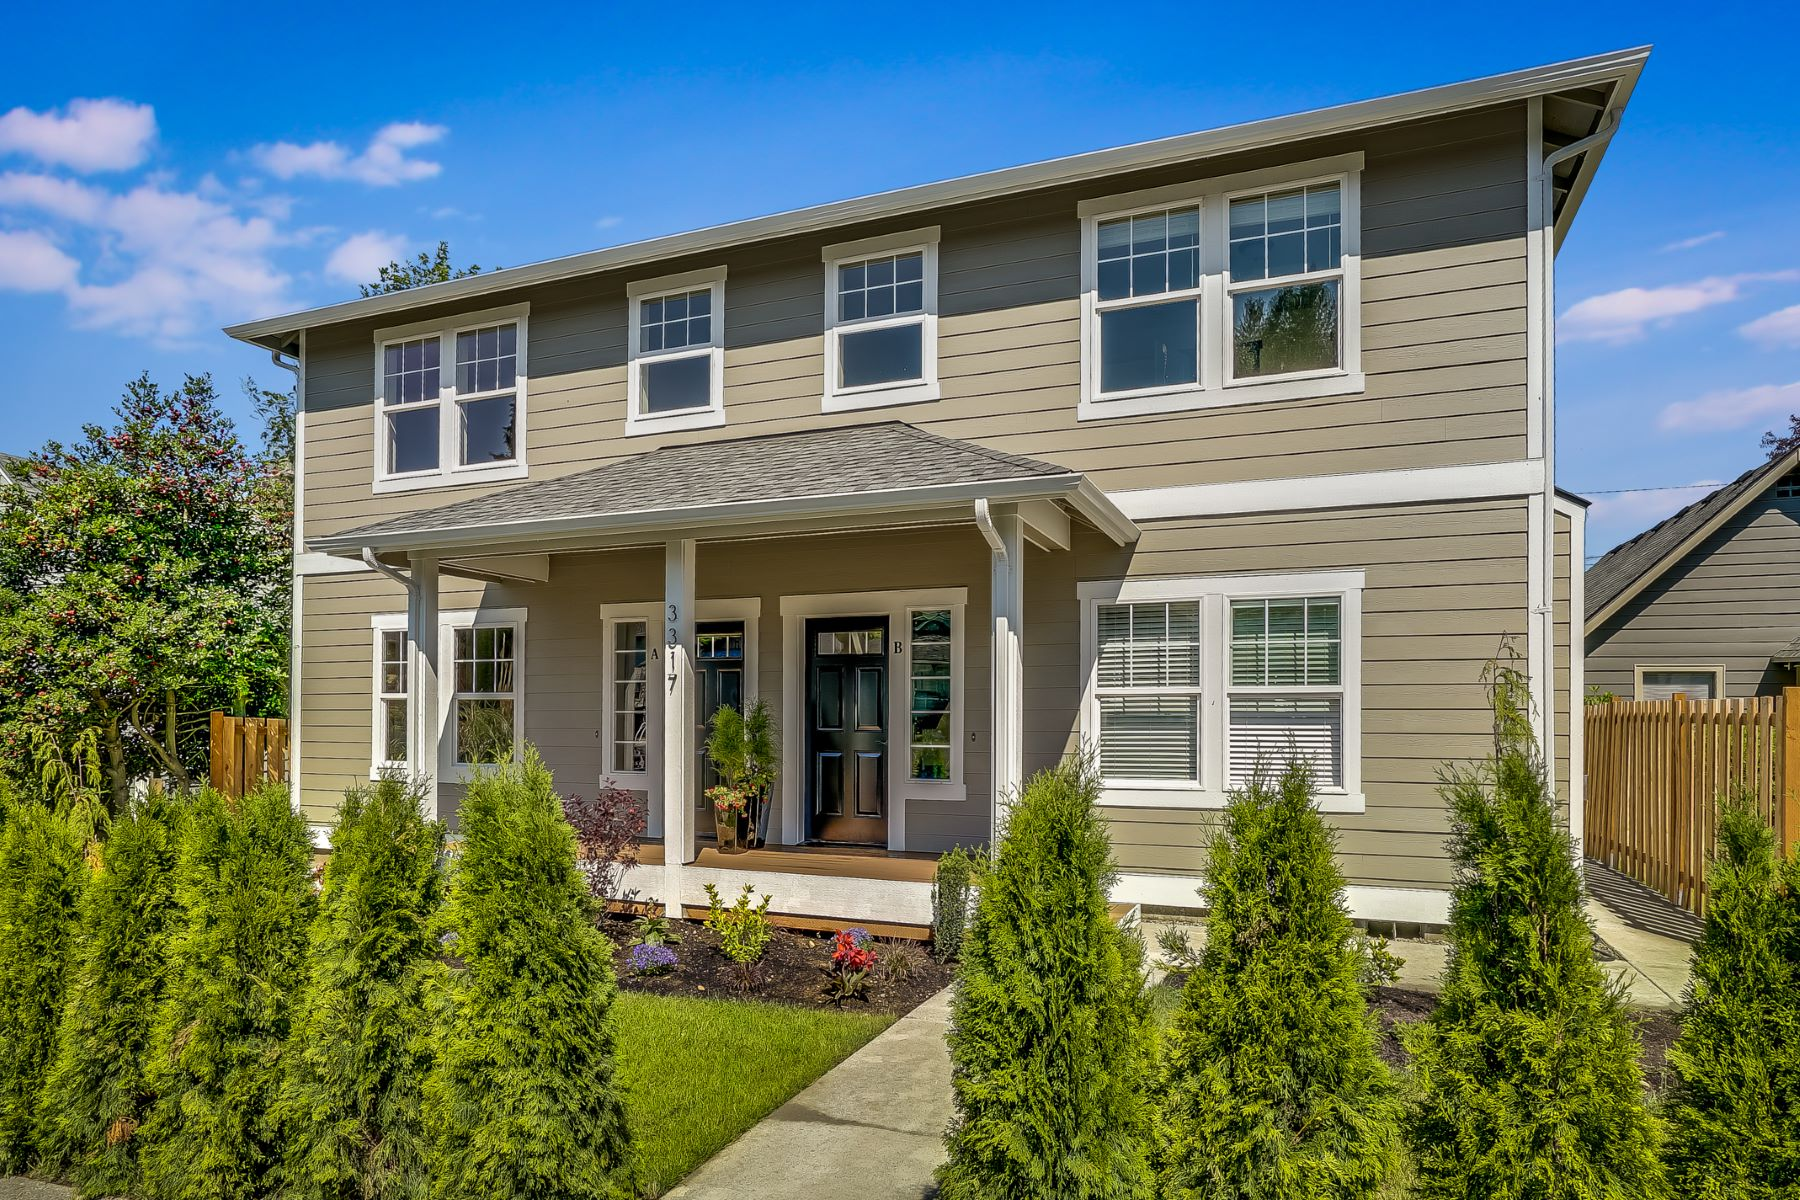 Condominiums for Sale at Hoyt Townhome 3323 Hoyt Ave Unit #A Everett, Washington 98201 United States